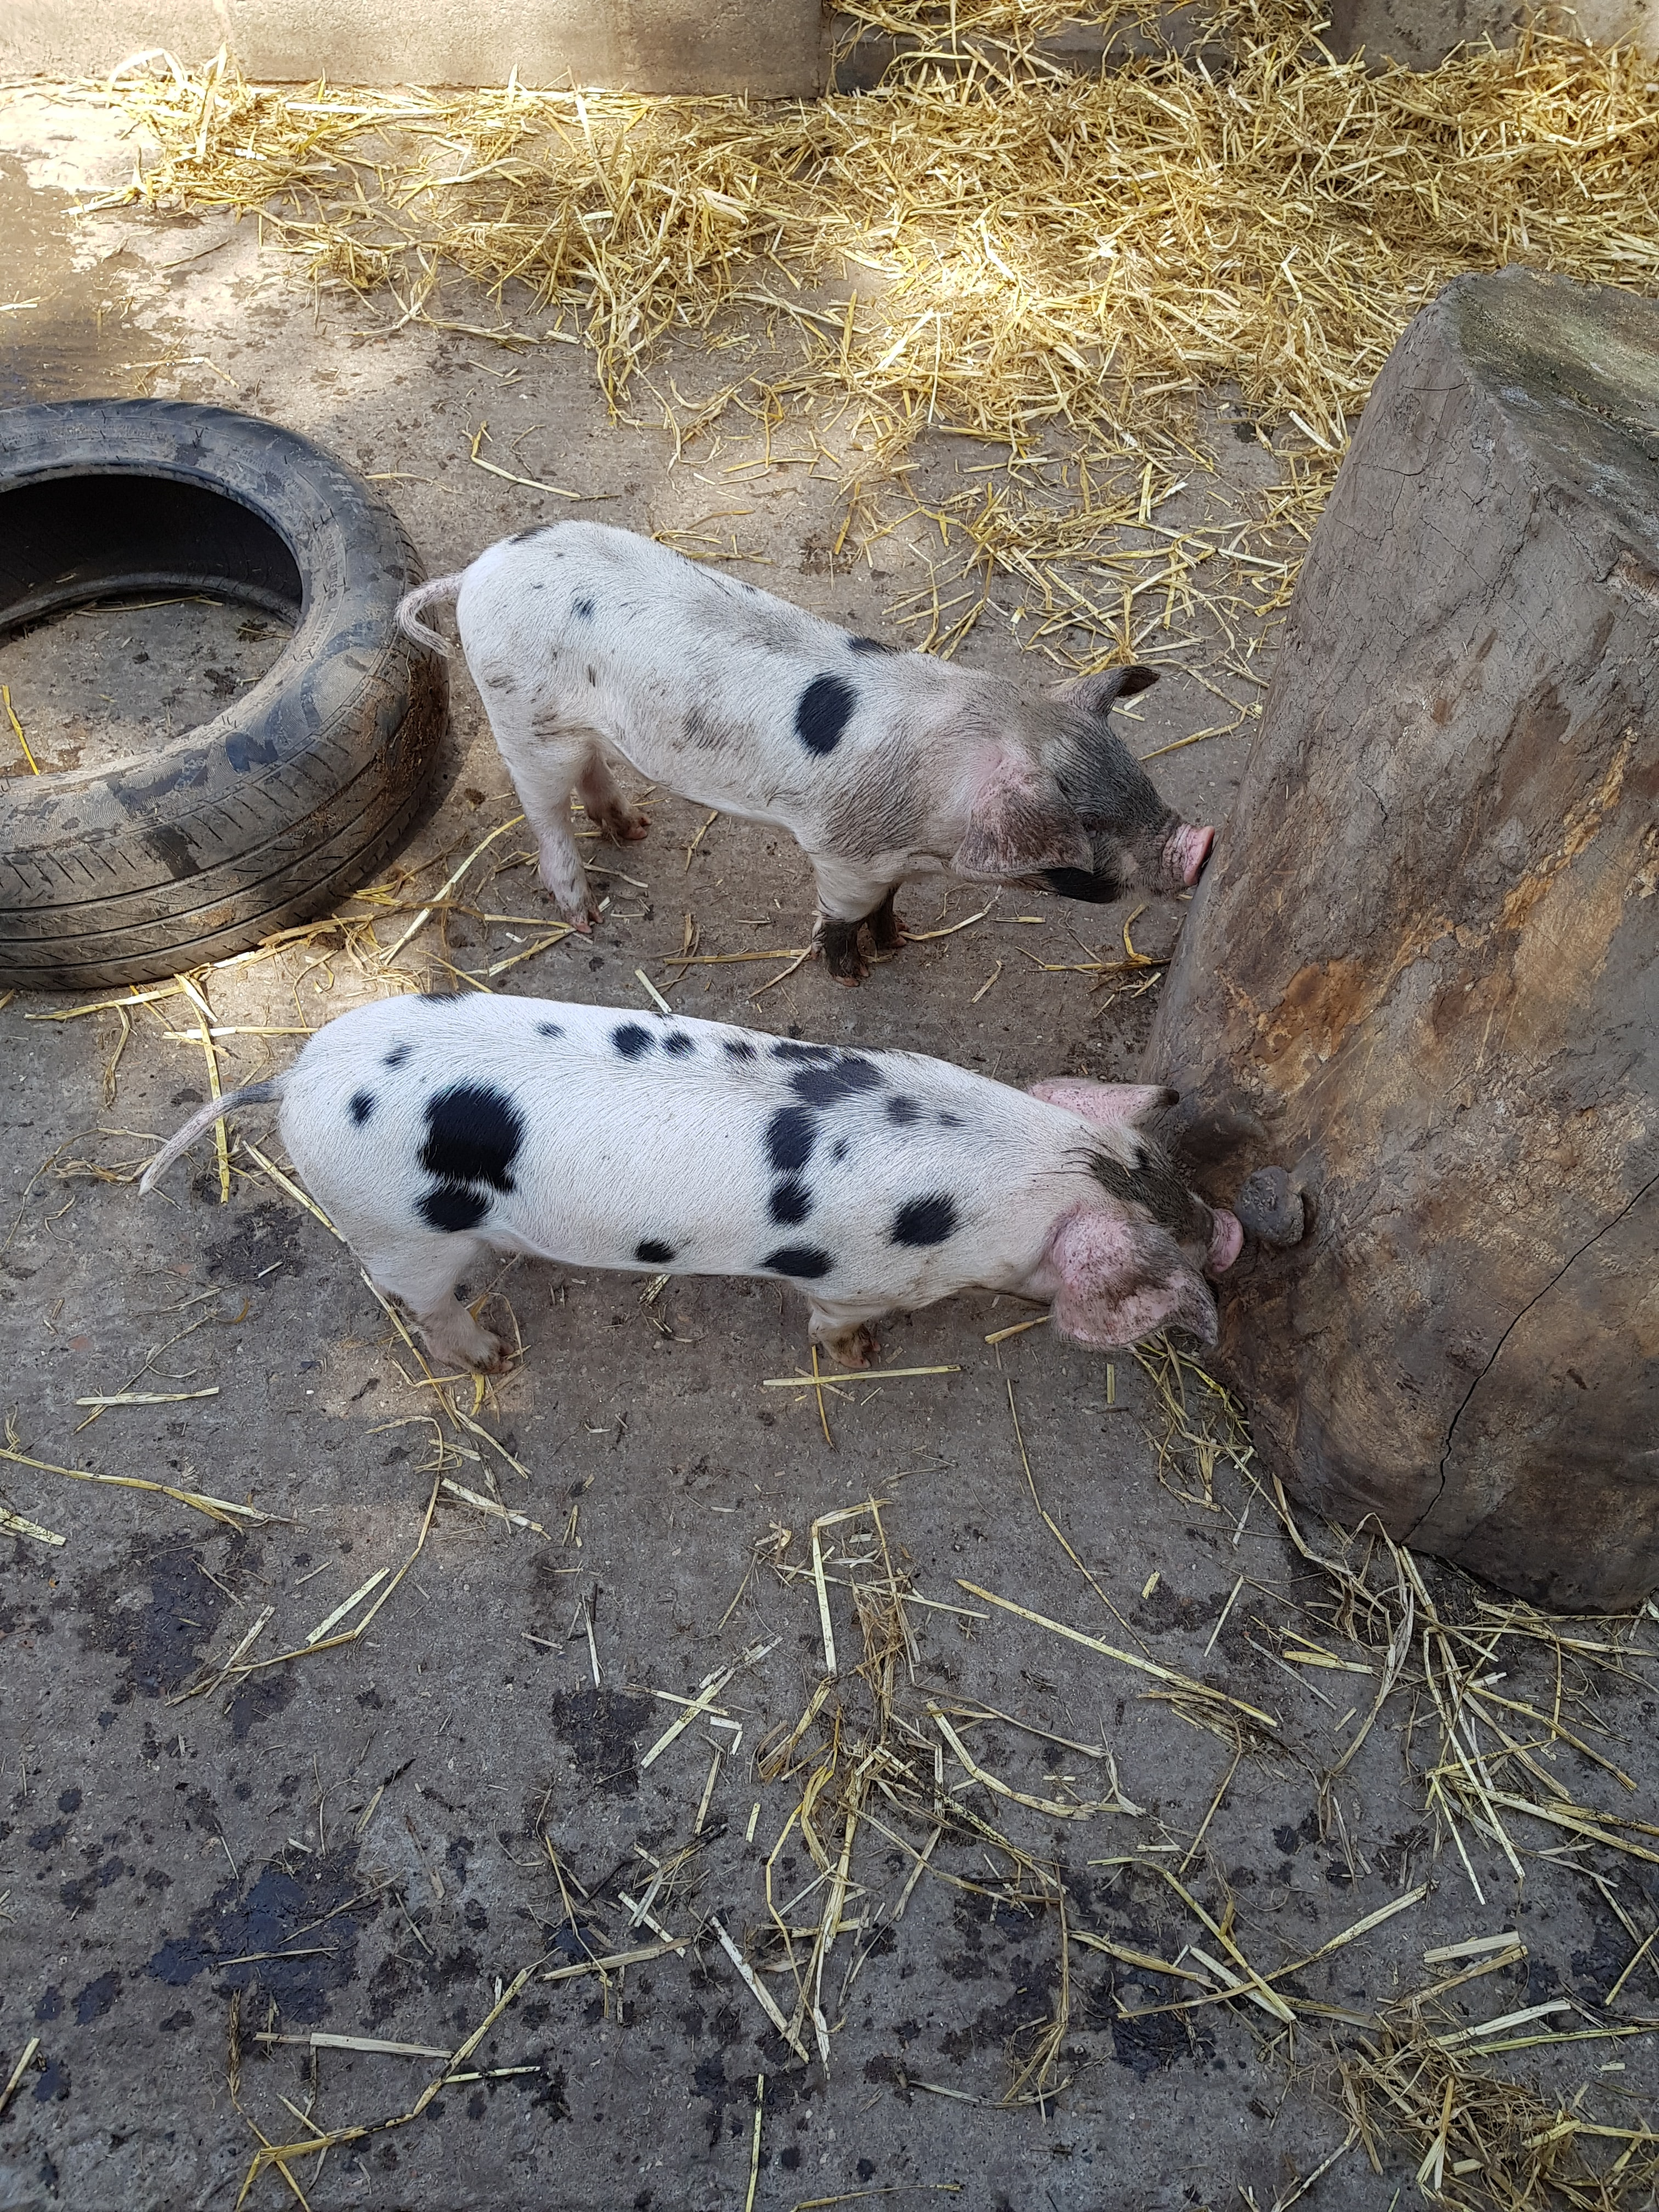 Two cute spotted piglets sniff a stump in a muddy pig pen